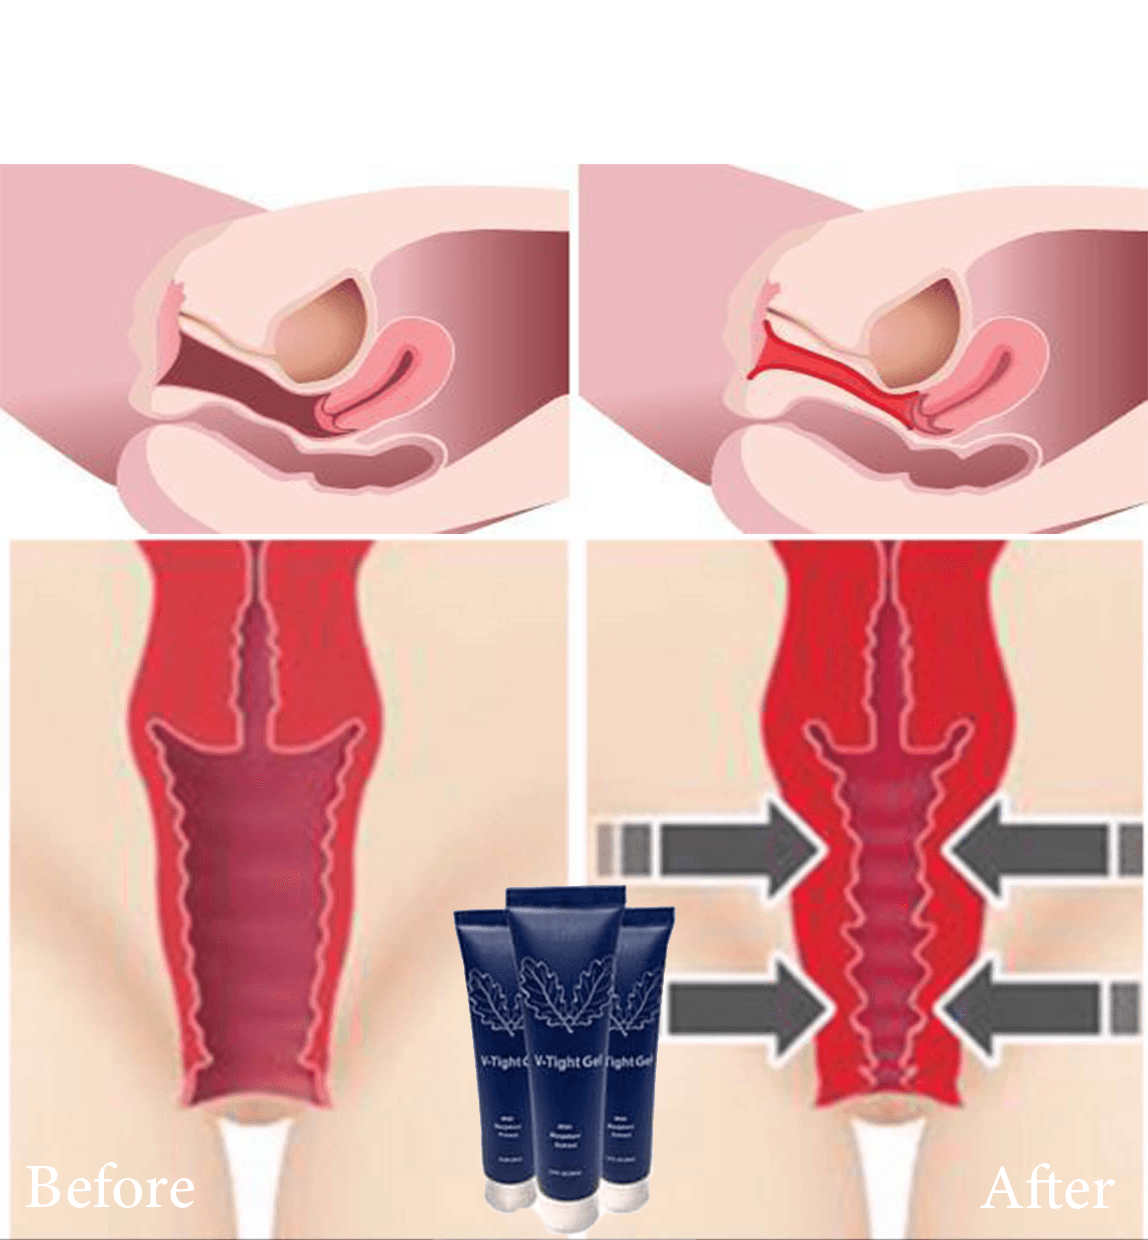 Vaginal Tightening Cream V-Tight Before and After